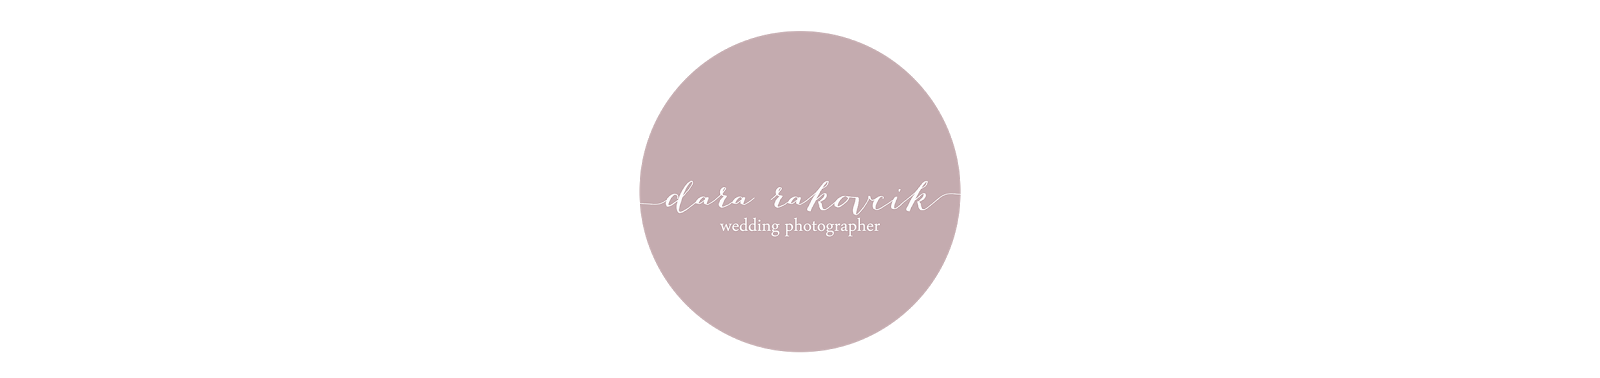 Dara Rakovcik | Wedding photographer | Hochzeitsfotografie